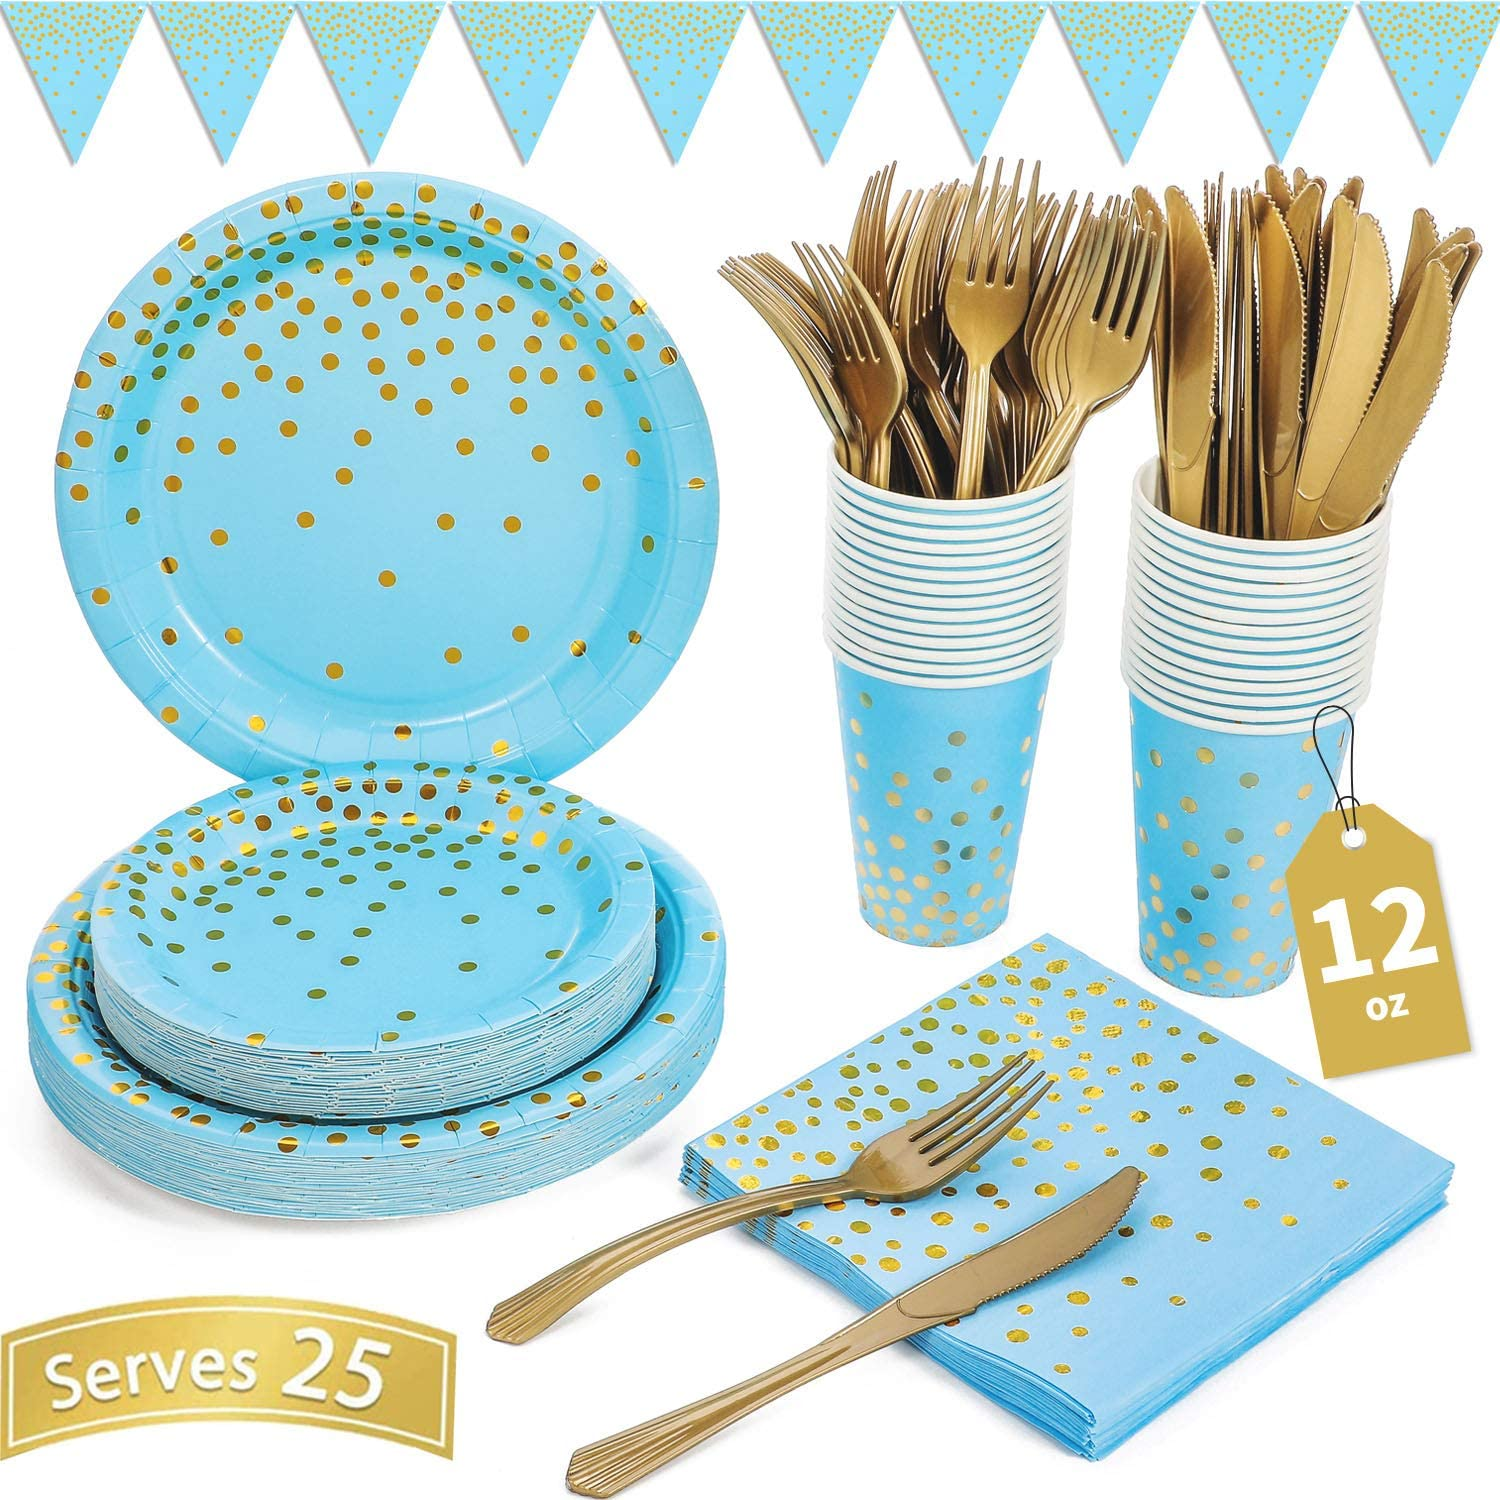 Blue and Gold Party Supplies 150PCS Golden Dot Disposable Party Dinnerware Includes Paper Plates, Napkins, Knives, Forks, 12oz Cups, Banner, for Baby Shower, Boy Birthday, Serves 25